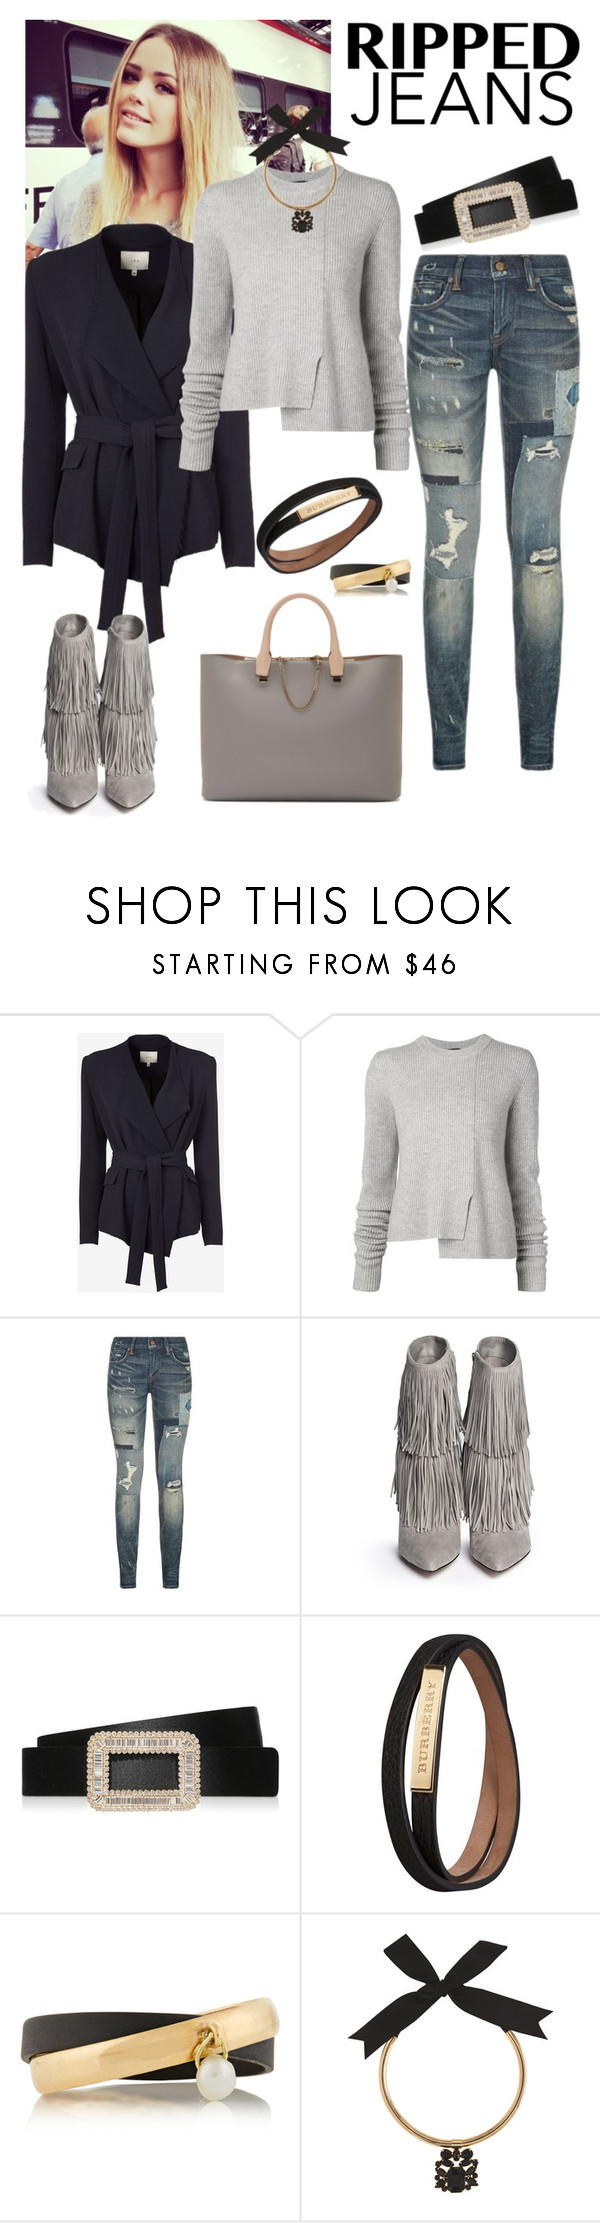 """""""DOH Style 'Style This Trend: Ripped Jeans II'"""" by dohinstyle ❤ liked on Polyvore featuring IRO, Proenza Schouler, Polo Ralph Lauren, Sam Edelman, Roger Vivier, Burberry, Inez & Vinoodh, Coast and Chloé"""